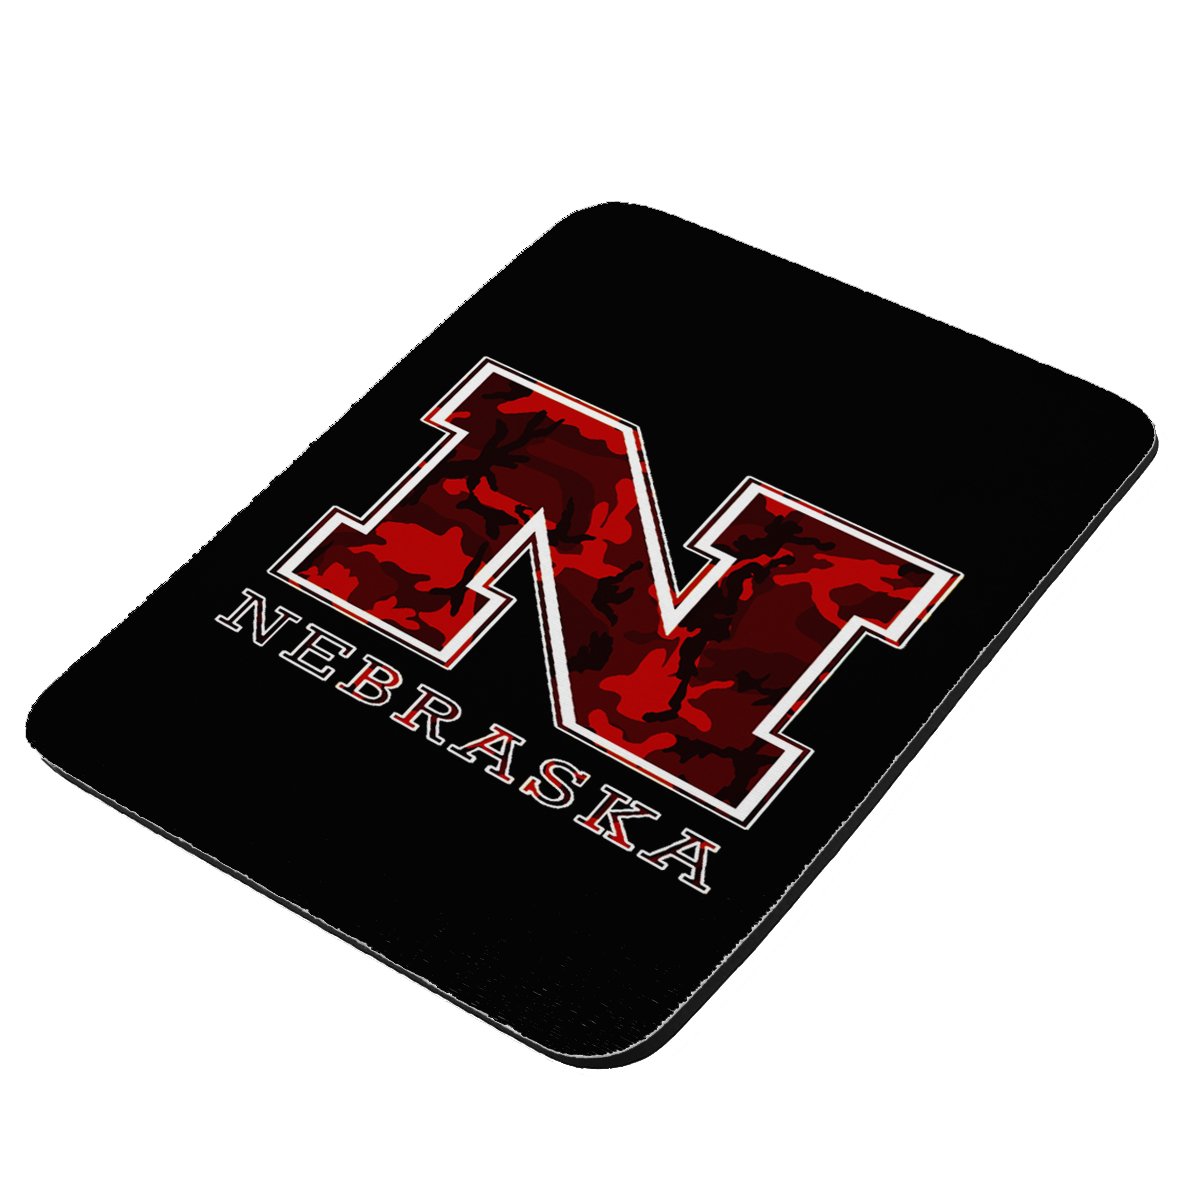 Nebraska Red Camouflage - KuzmarK Mousepad / Hot Pad / Trivet